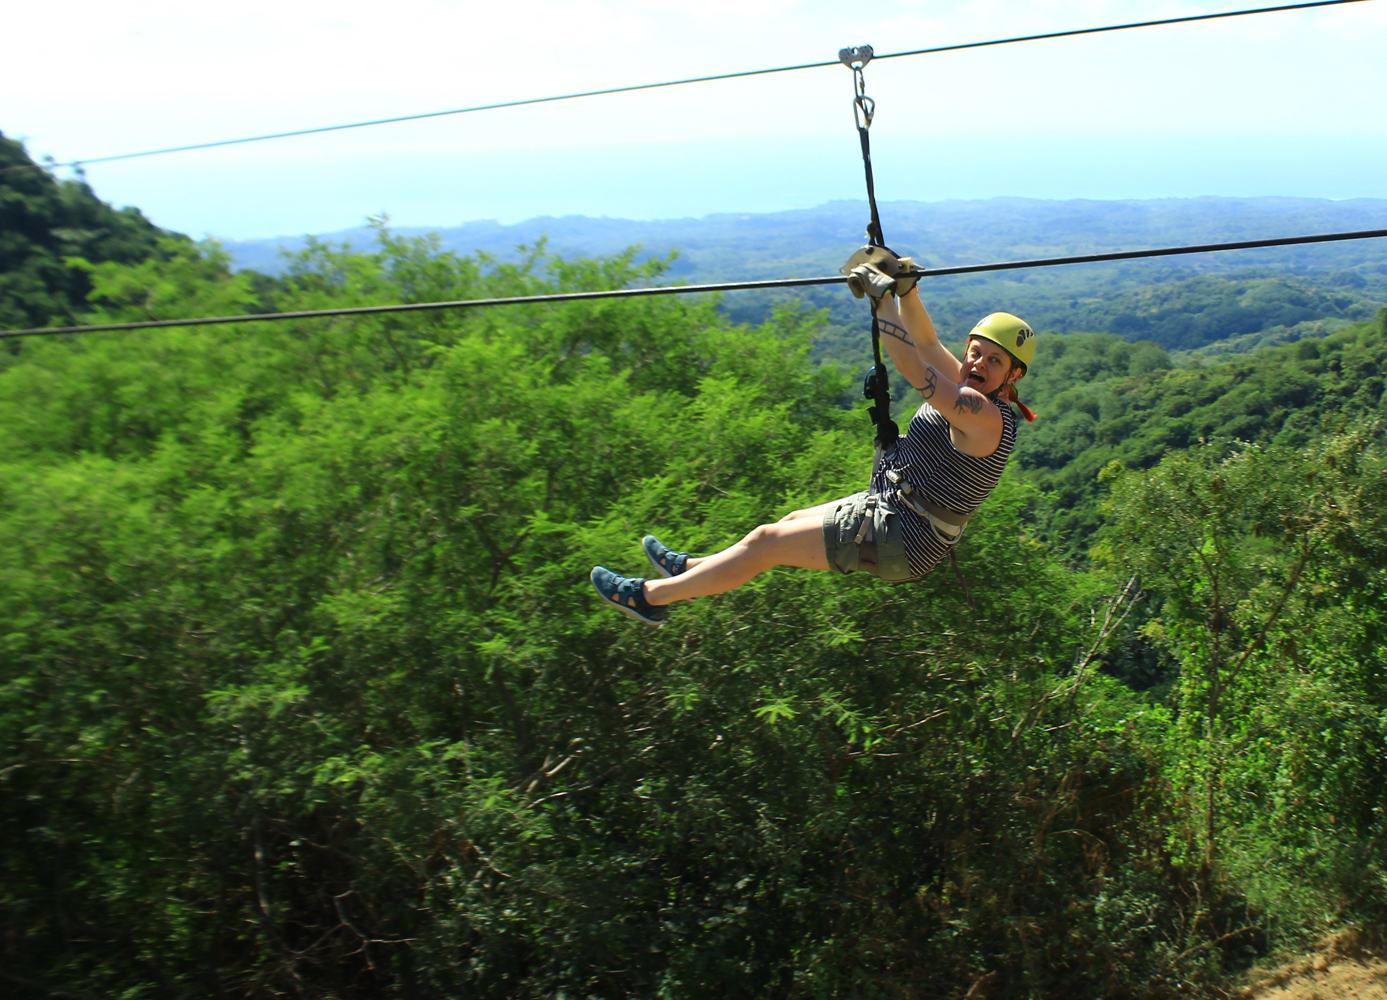 my first zipline ever - my face...!